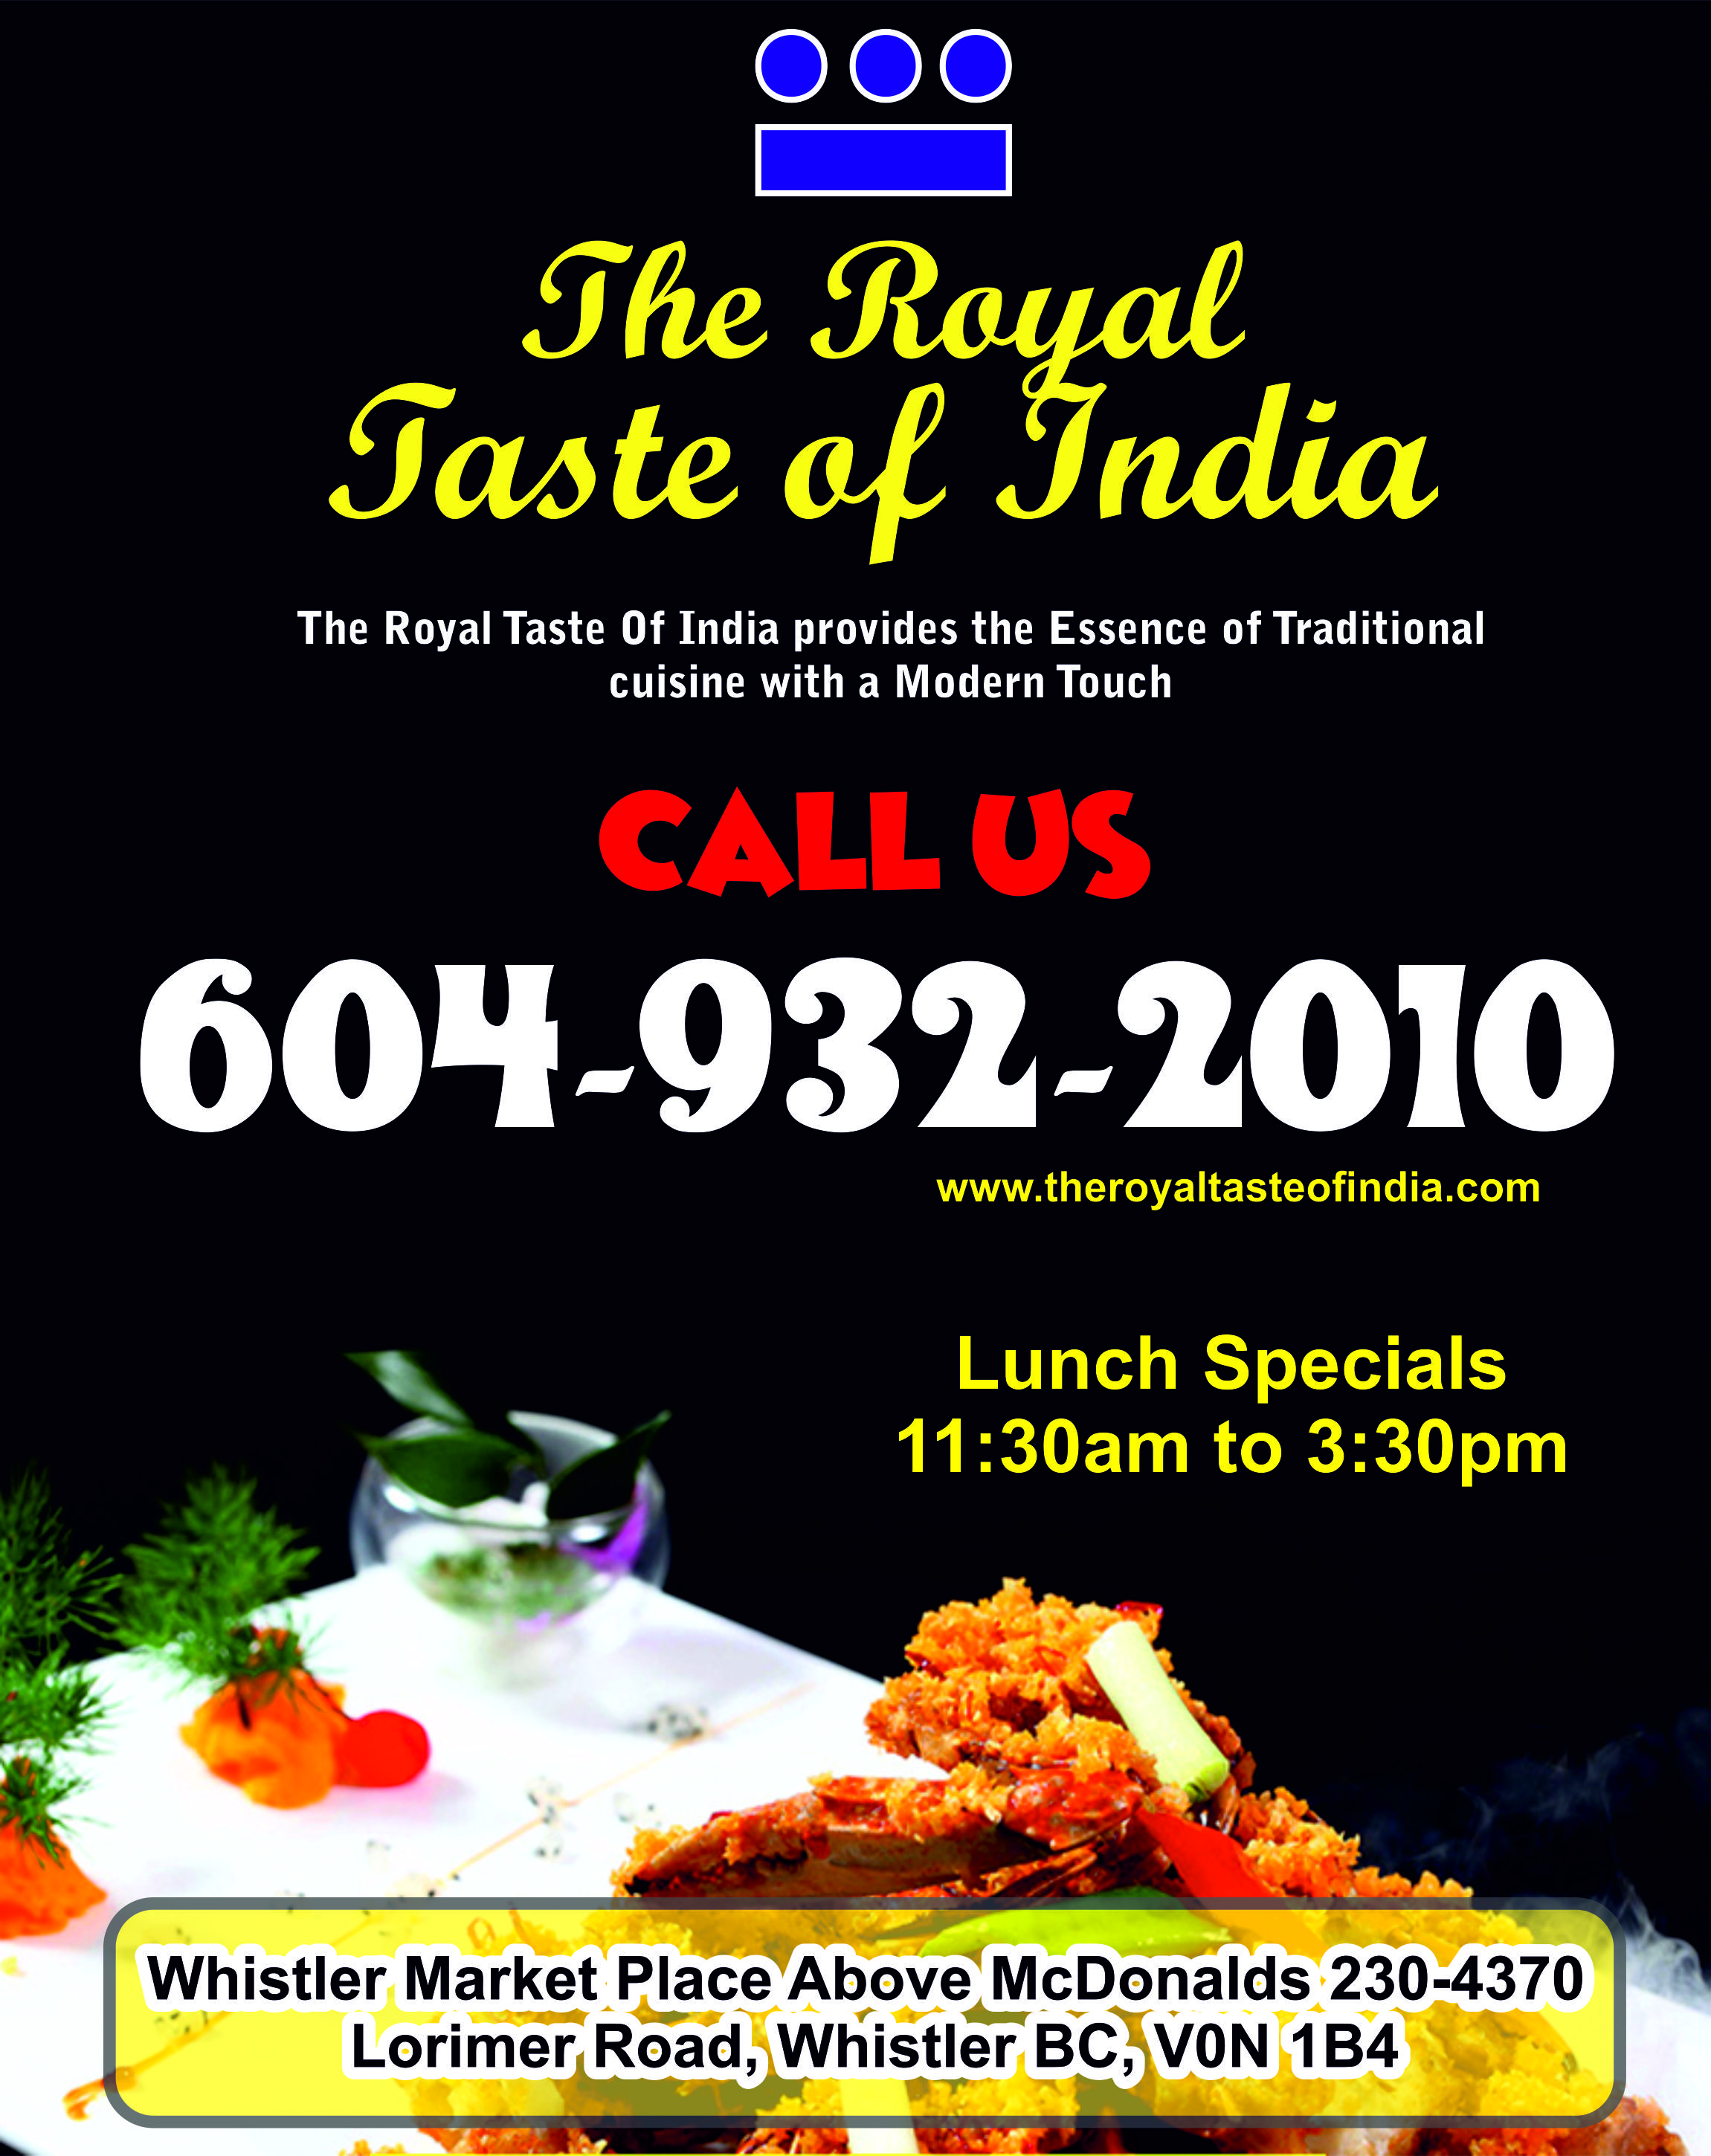 Royalcurrychickenwhistler And Gluten Free Restaurant At Theroyaltasteofindia For More Info Visit Our Website Food Discount Fish Curry Vegetarian Recipes